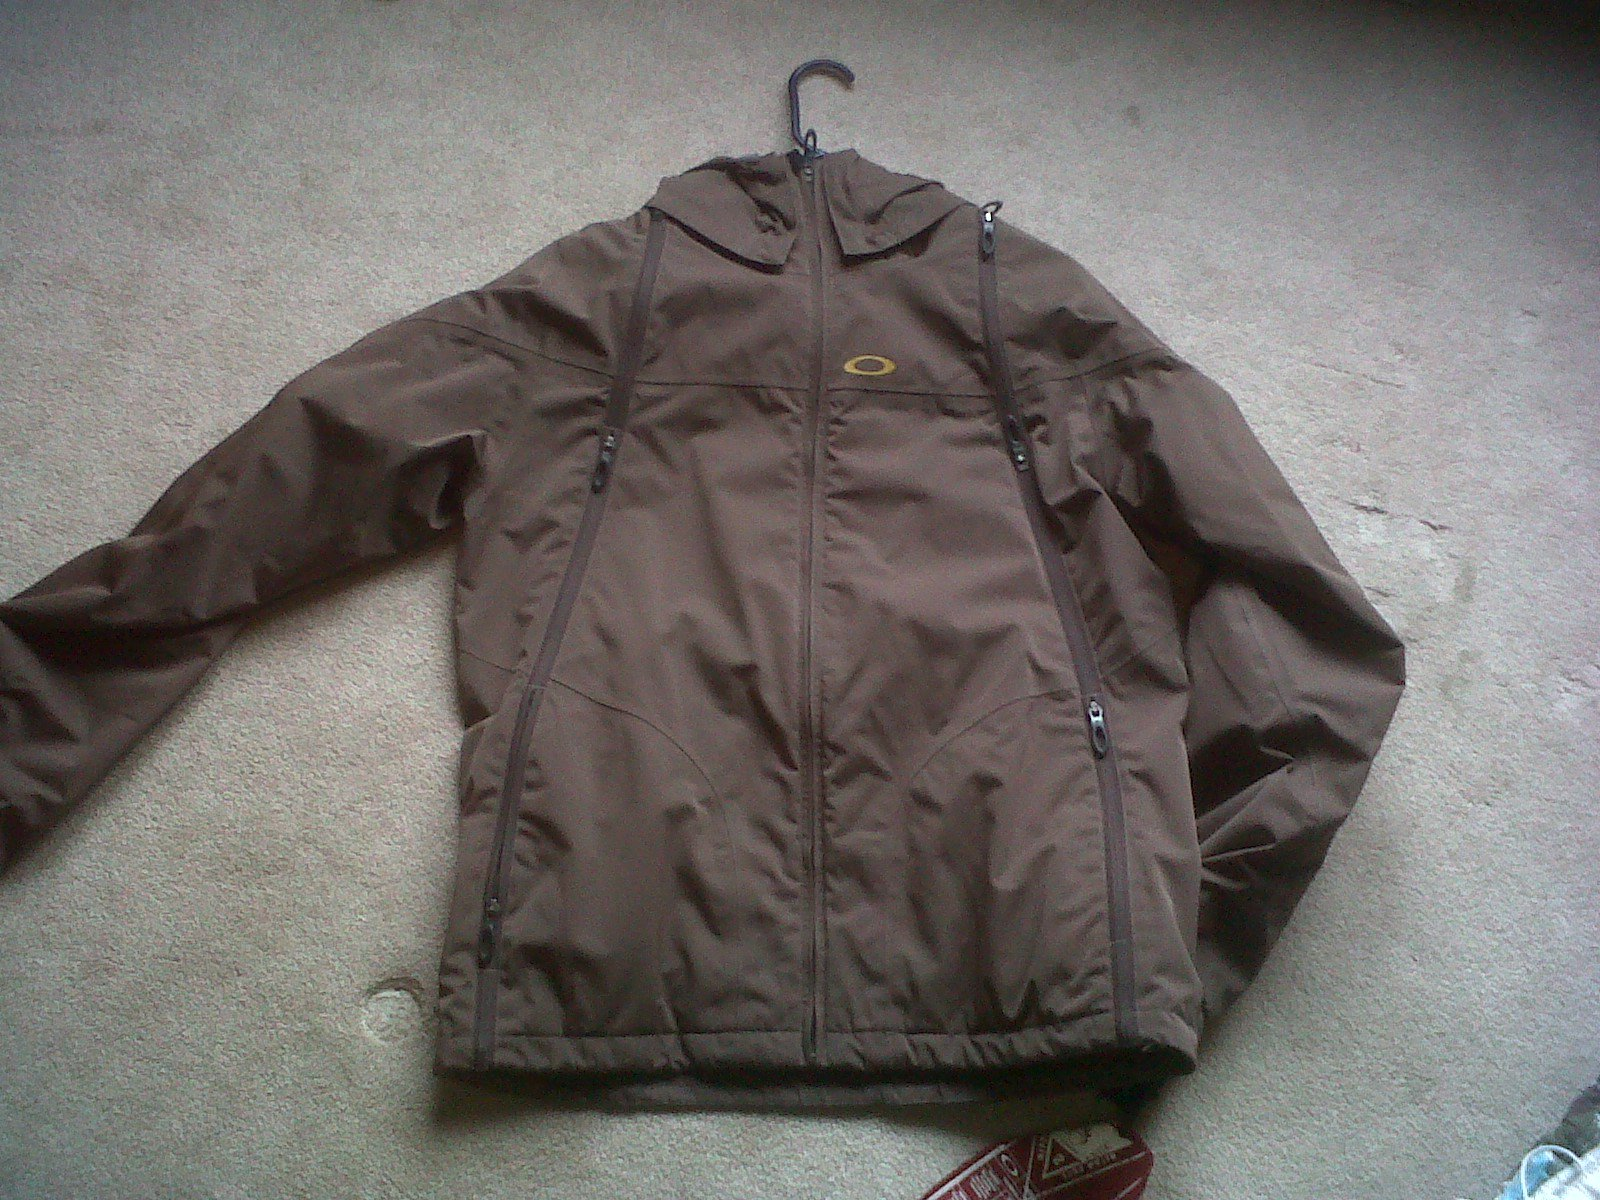 Oakley jacket for sale check thread